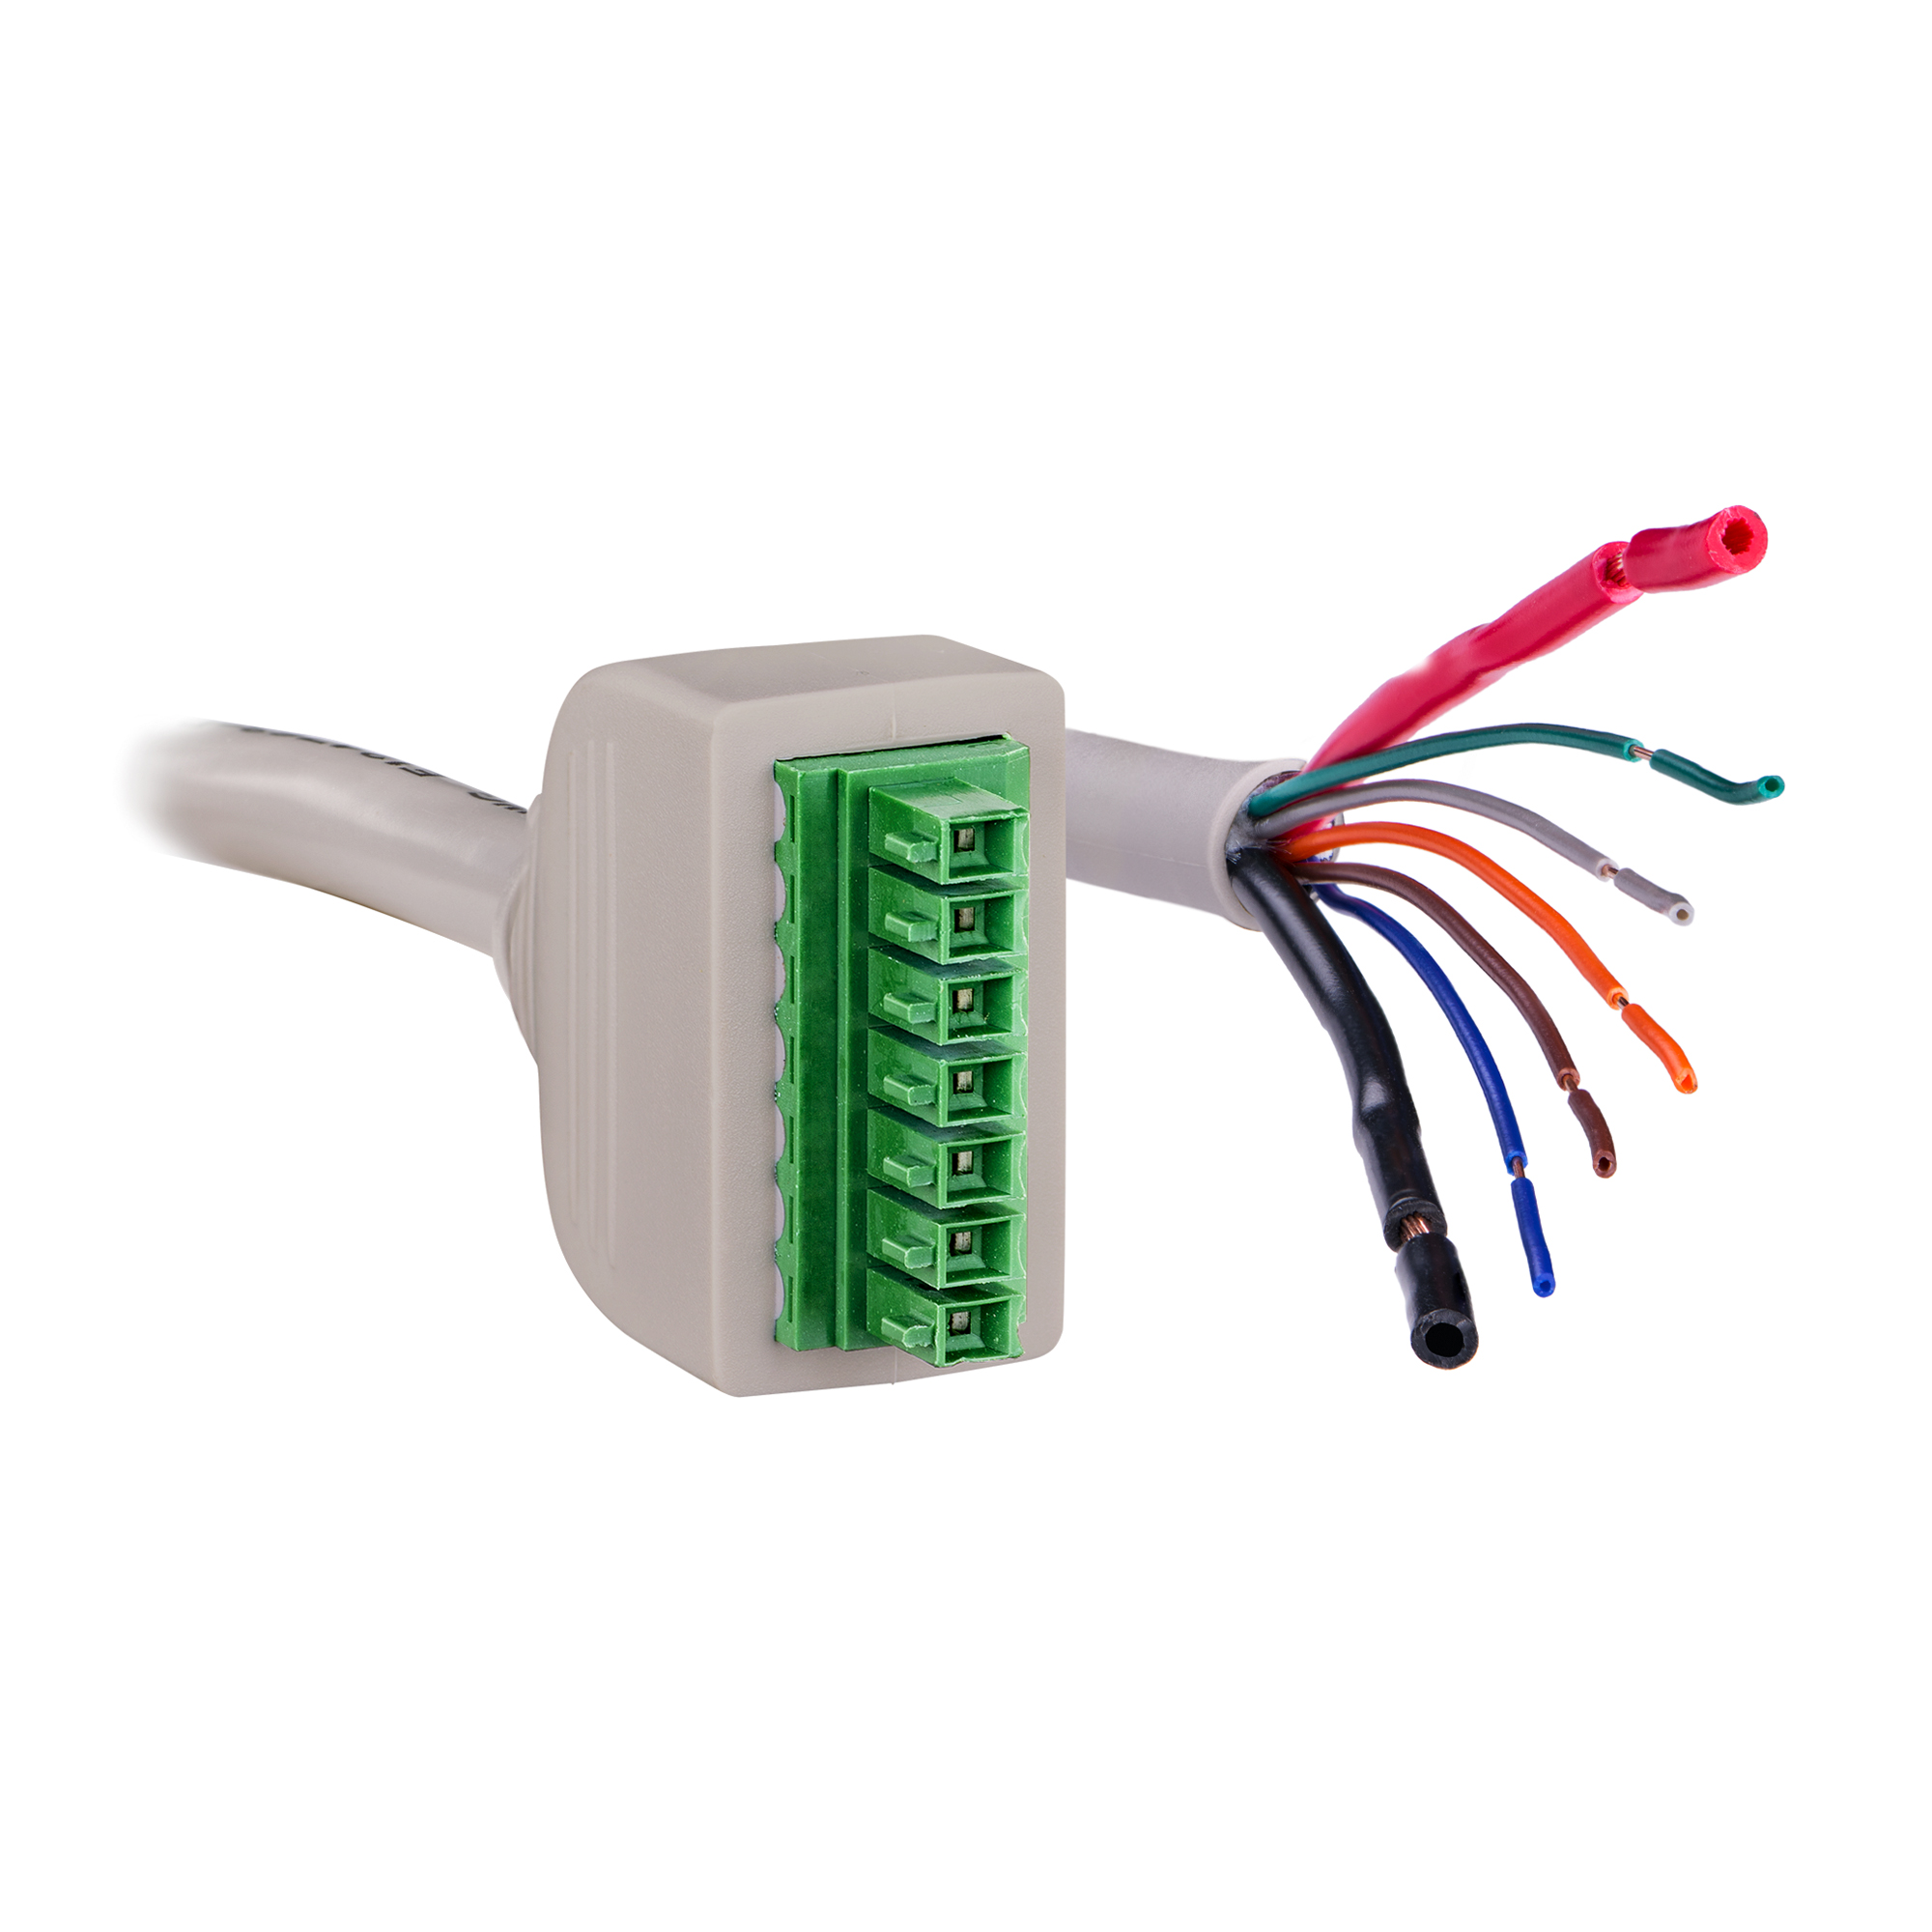 hight resolution of cp7pin10 power telemetry cables product details specs downloads cyberpower